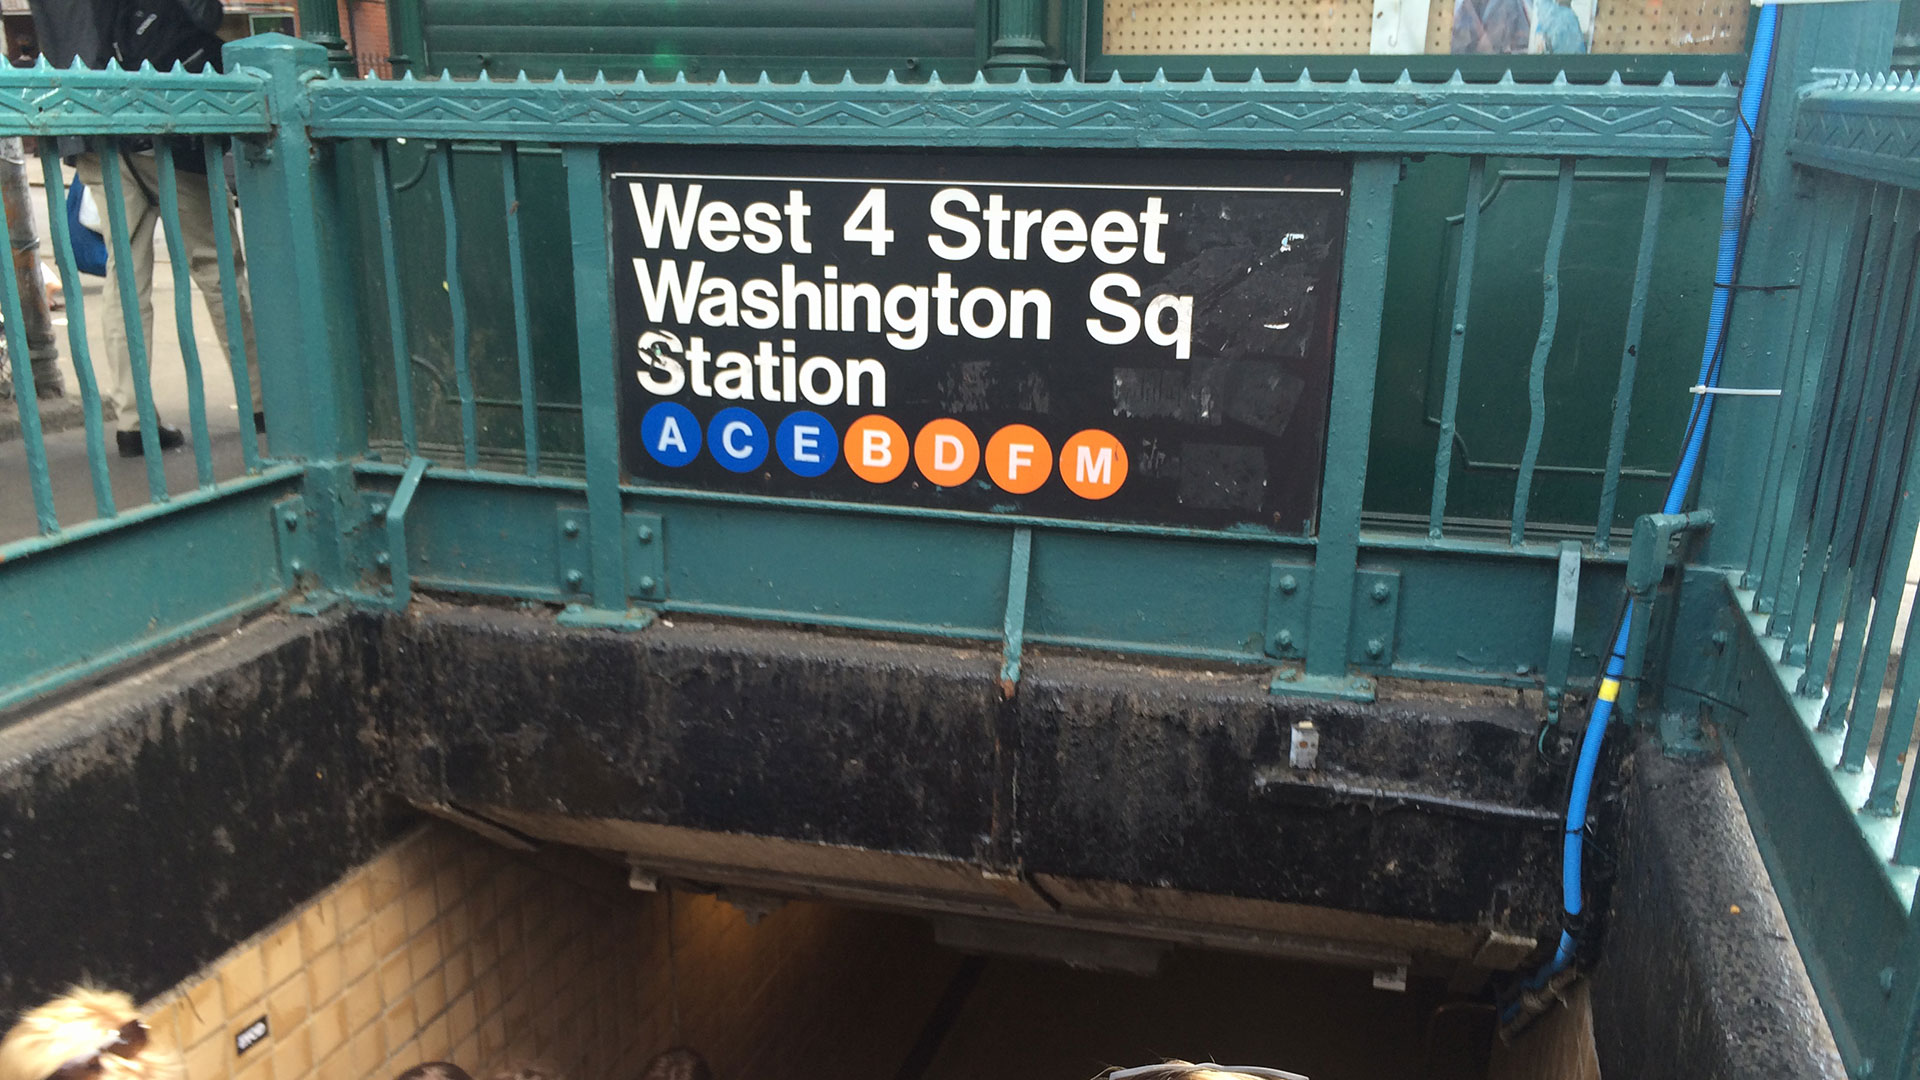 West 4th Street Subway Station